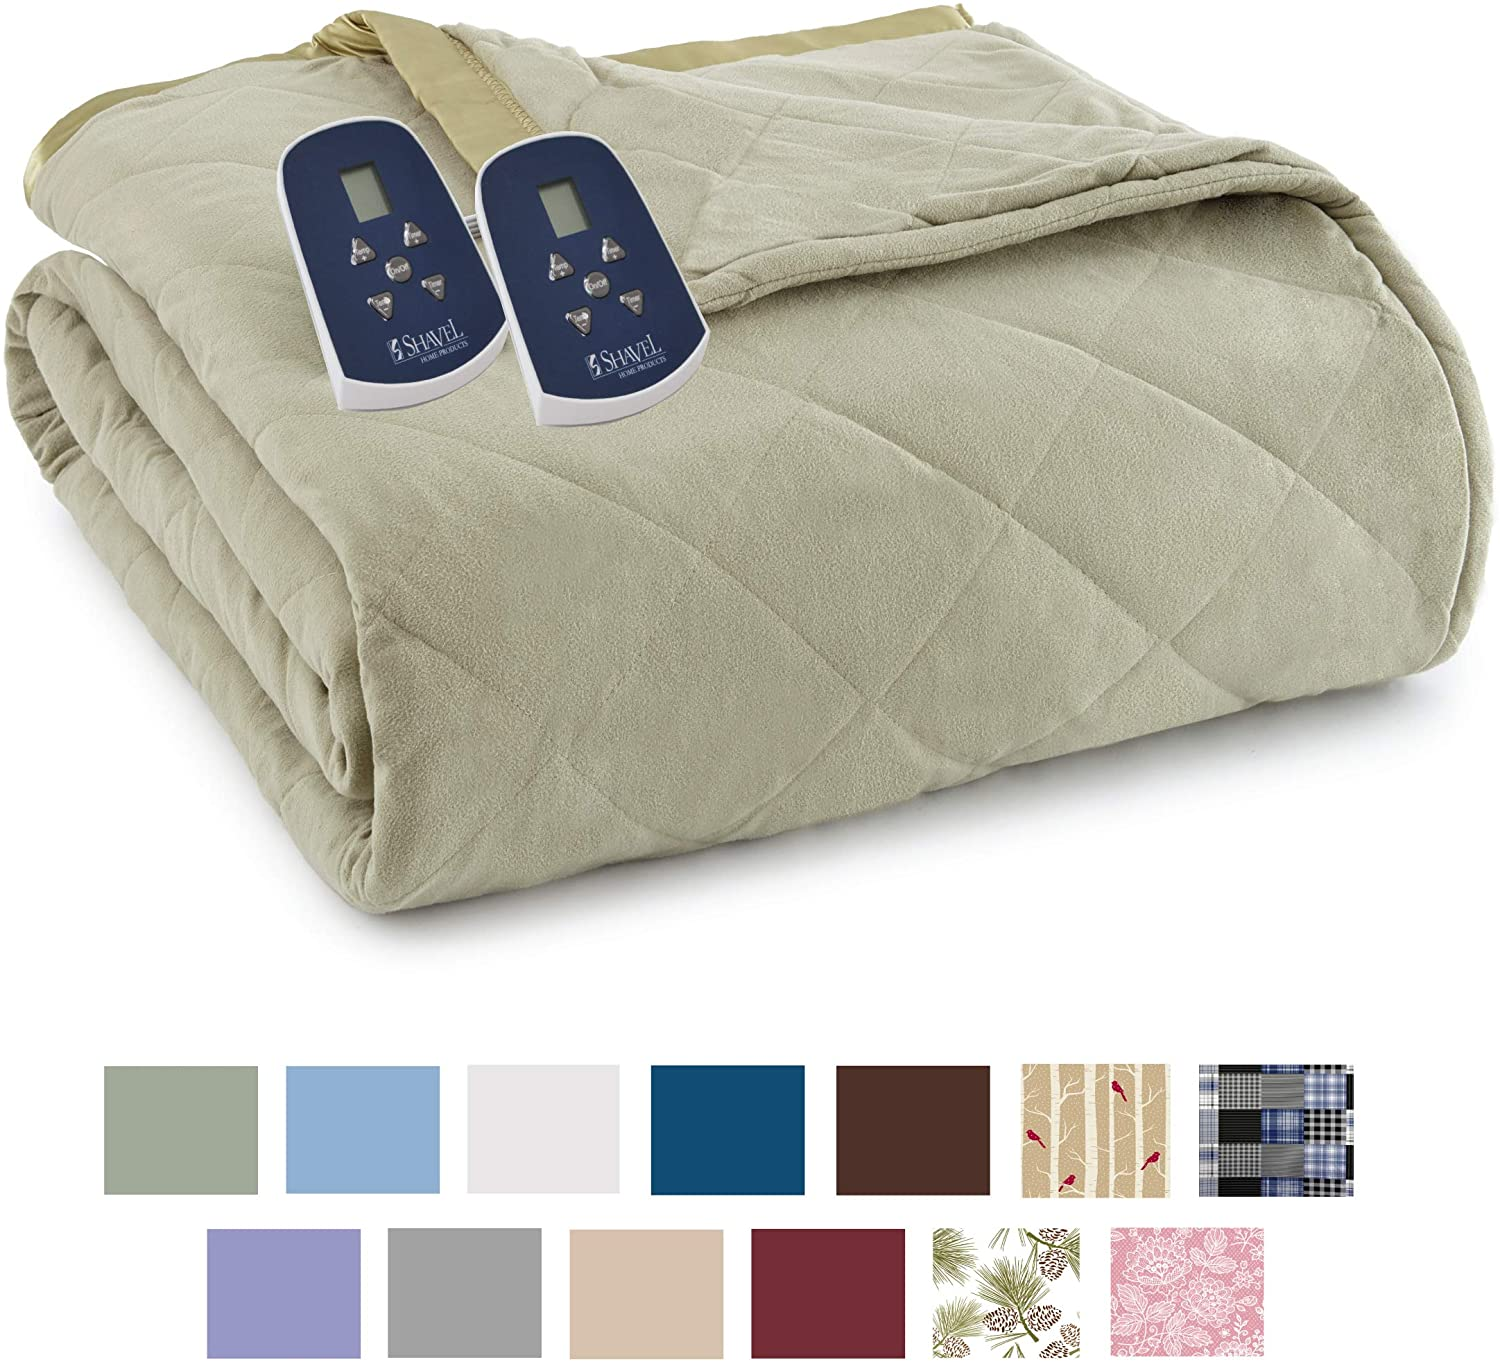 Shavel Home Products Electric Blanket